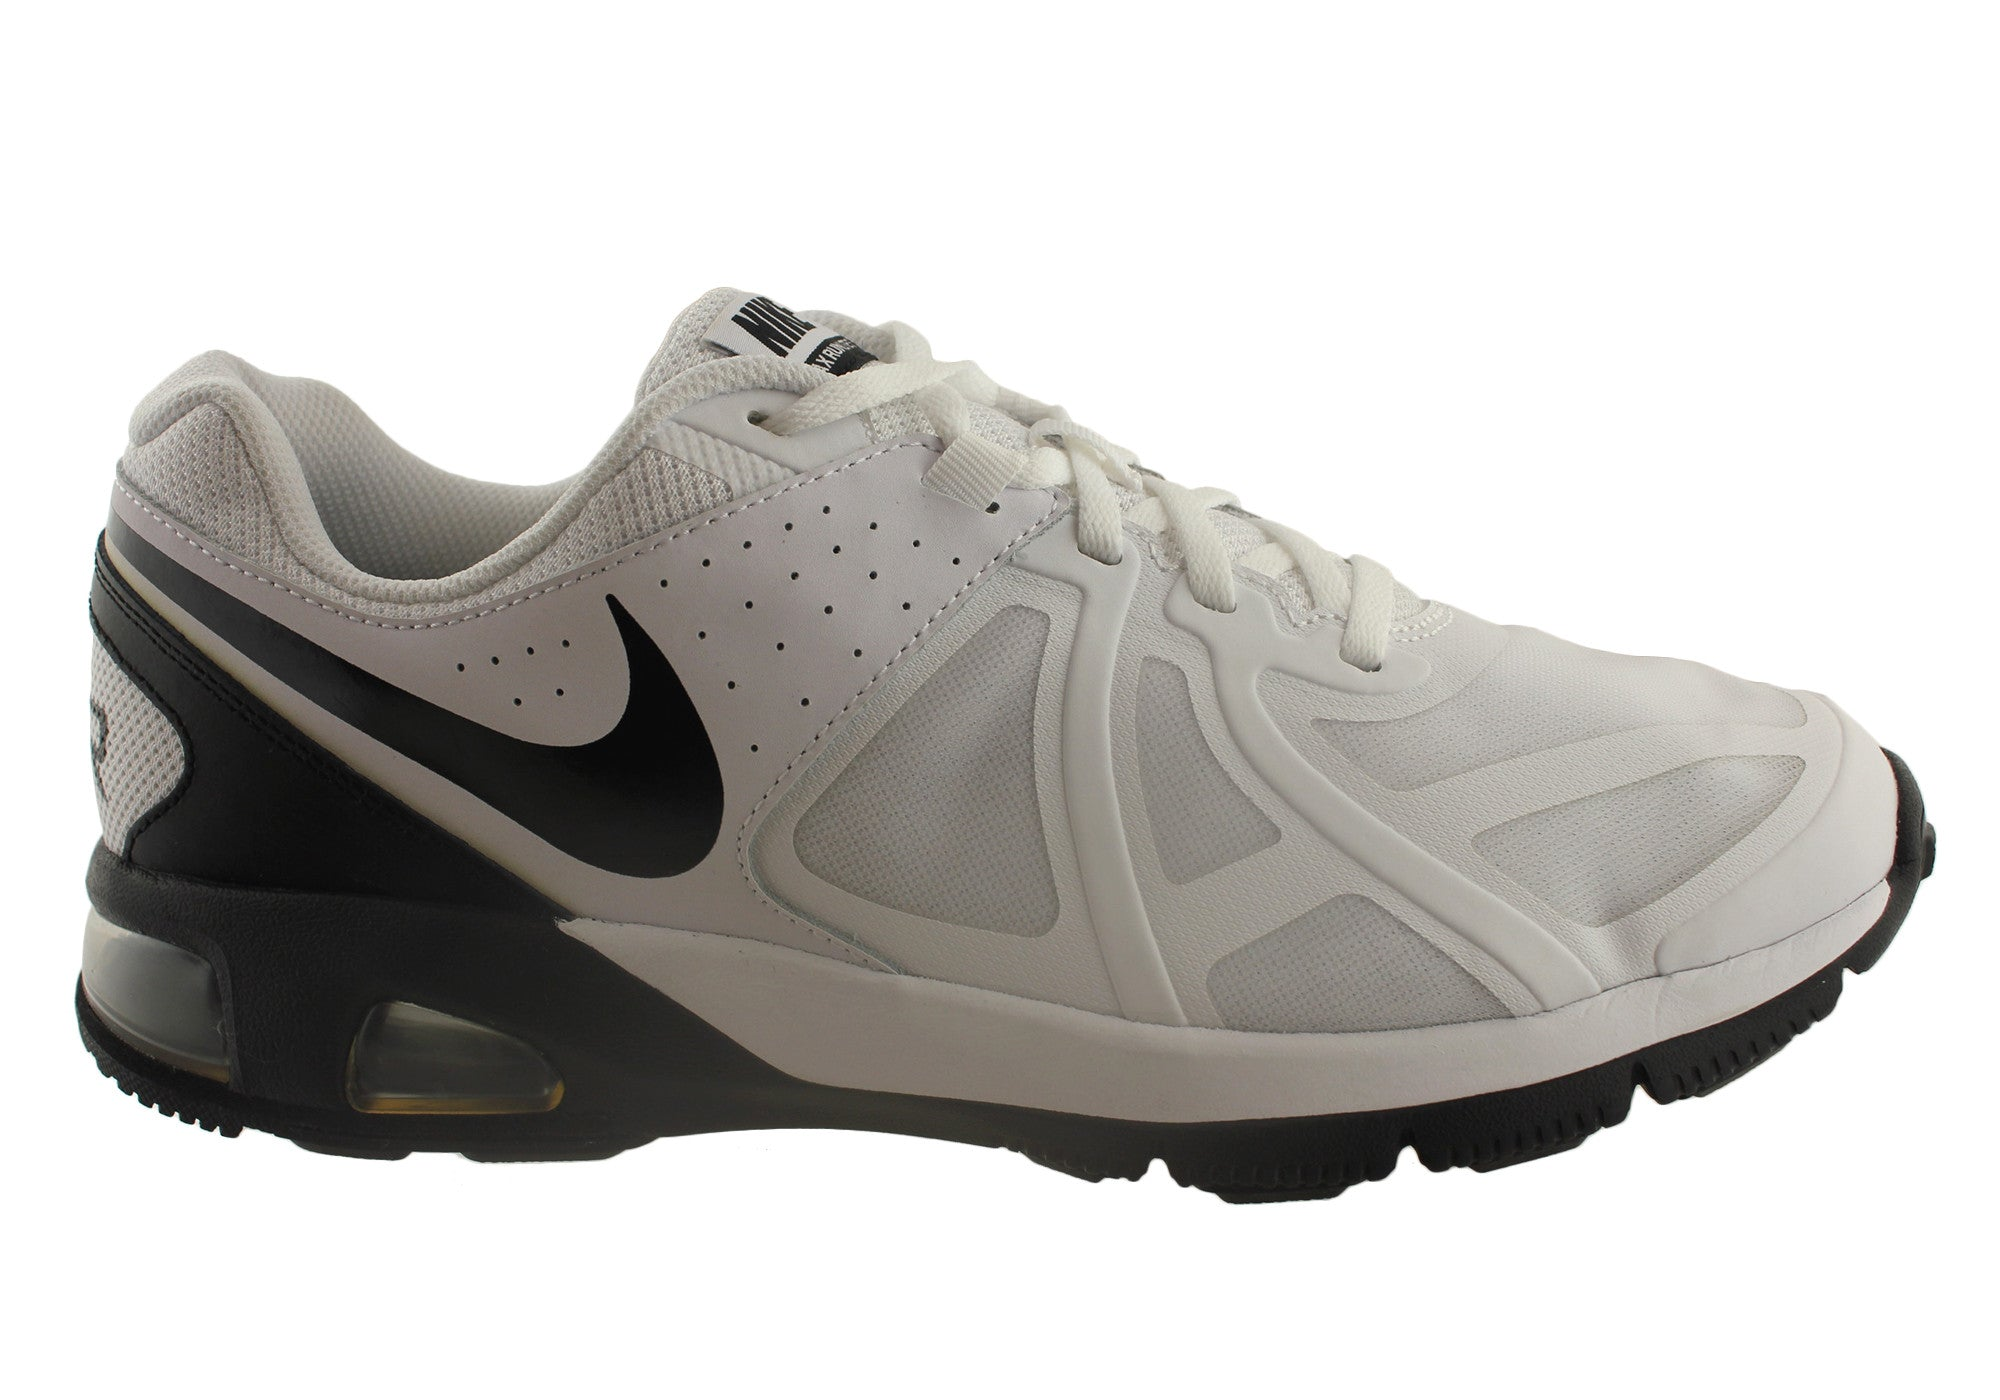 136177b196 Nike Air Max Run Lite 5 Mens Cushioned Running Shoes | Brand House ...